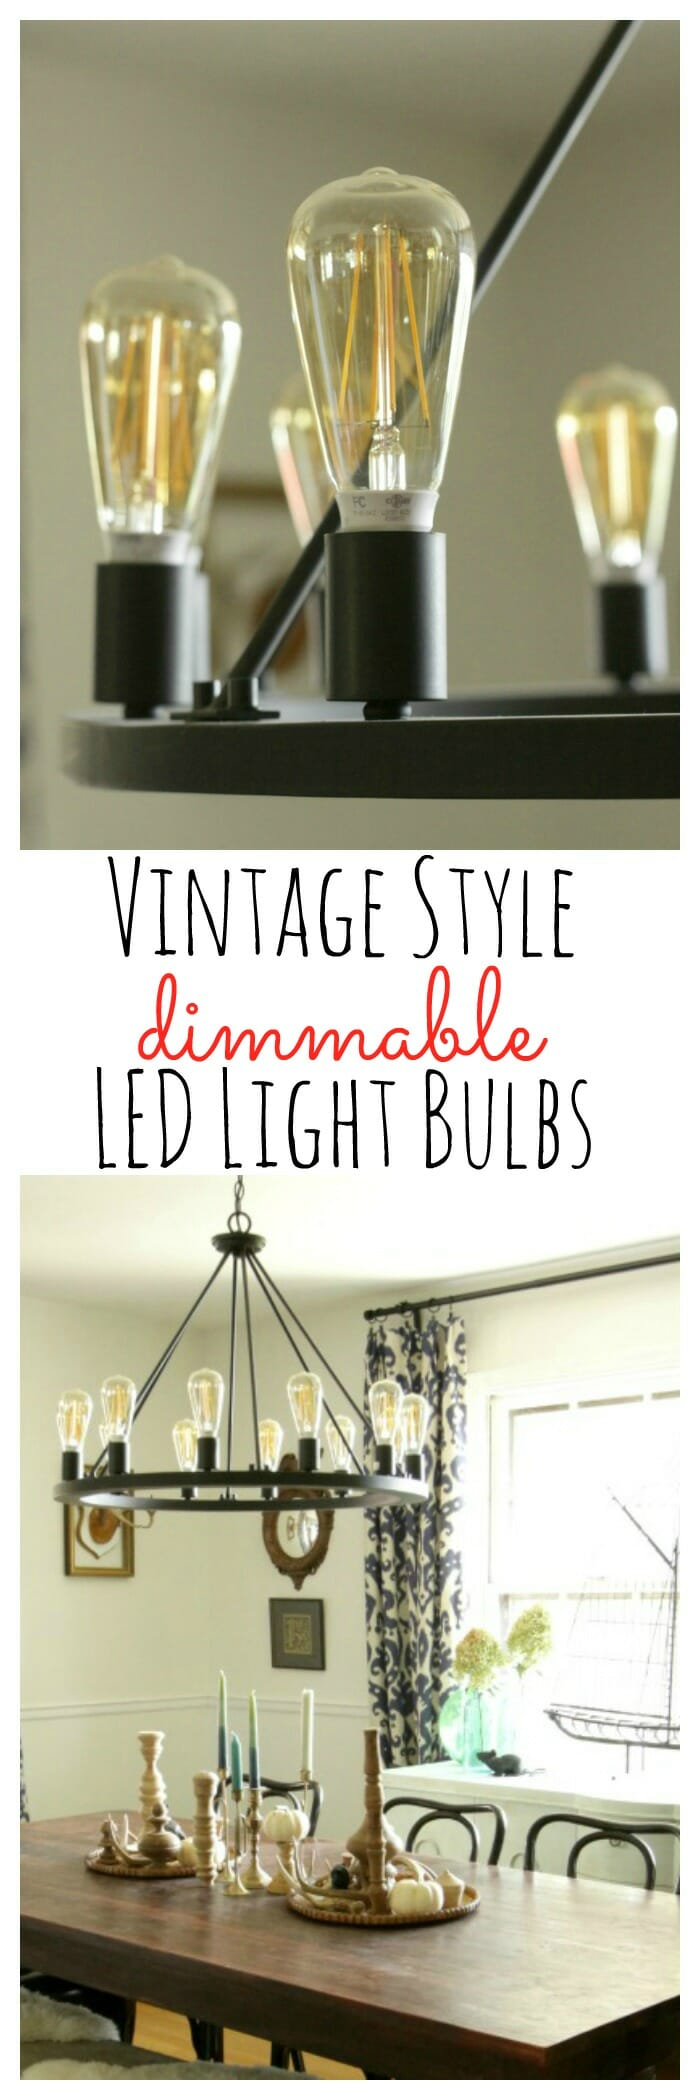 Led Vintage Style Dimmable Light Bulbs